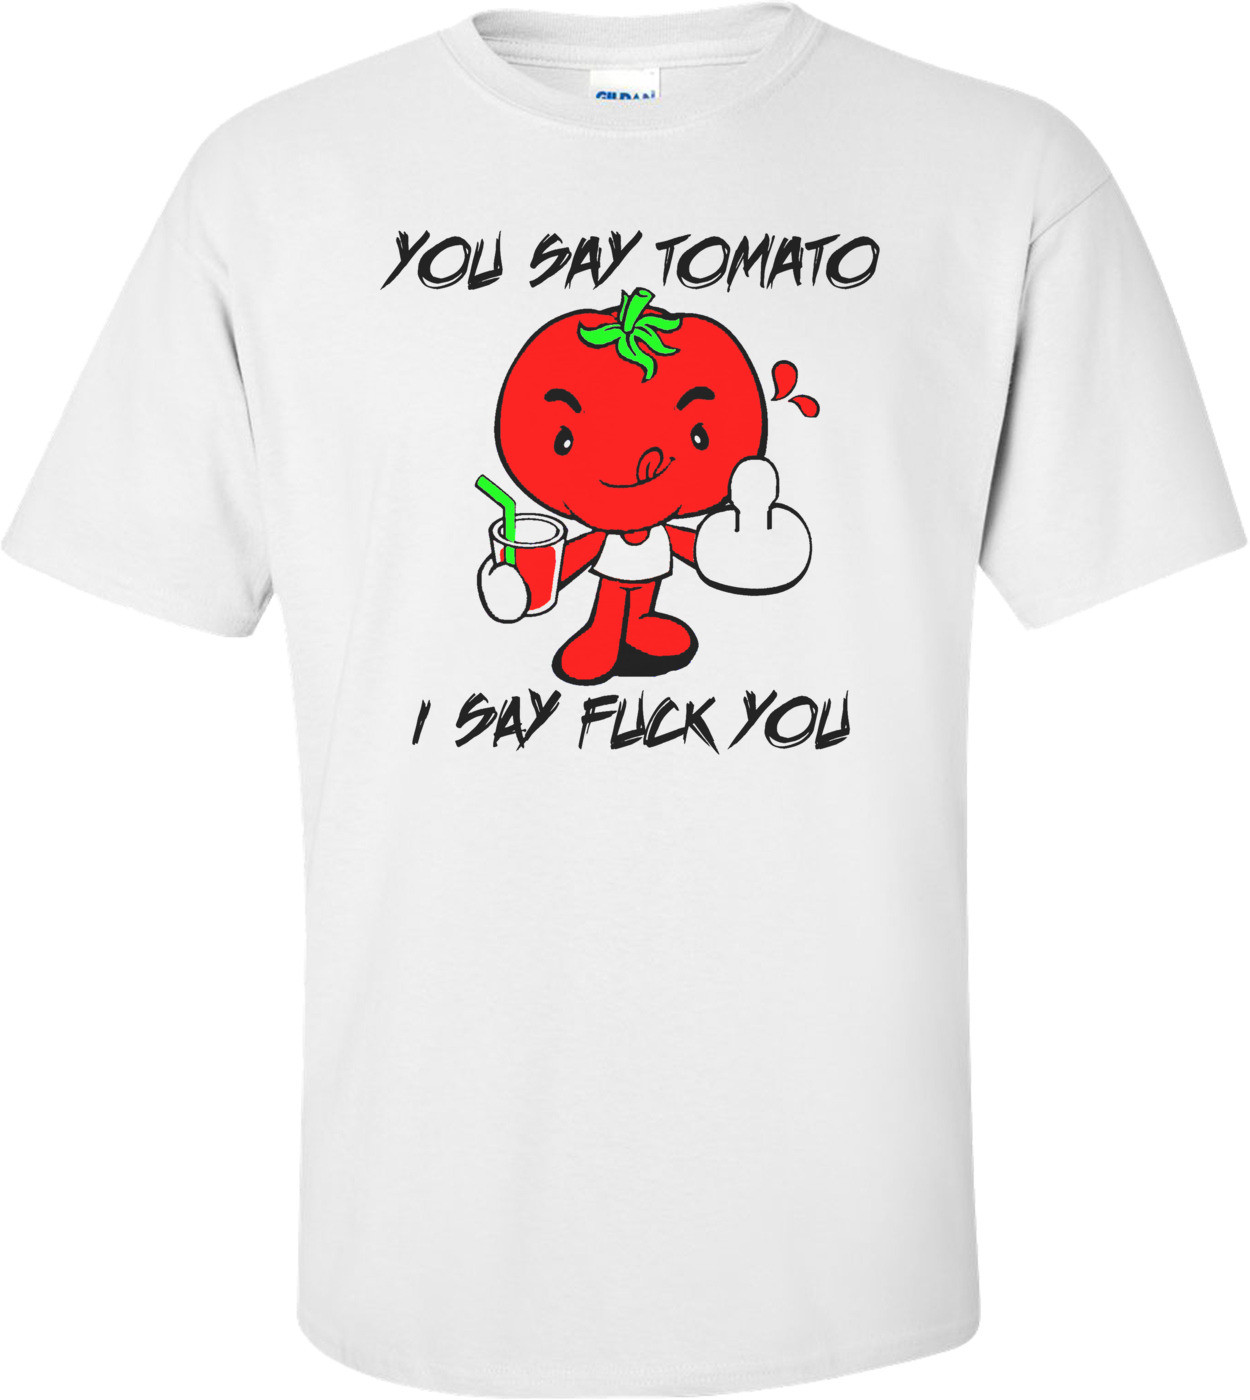 You Say Tomato I Say Fuck You Funny Shirt